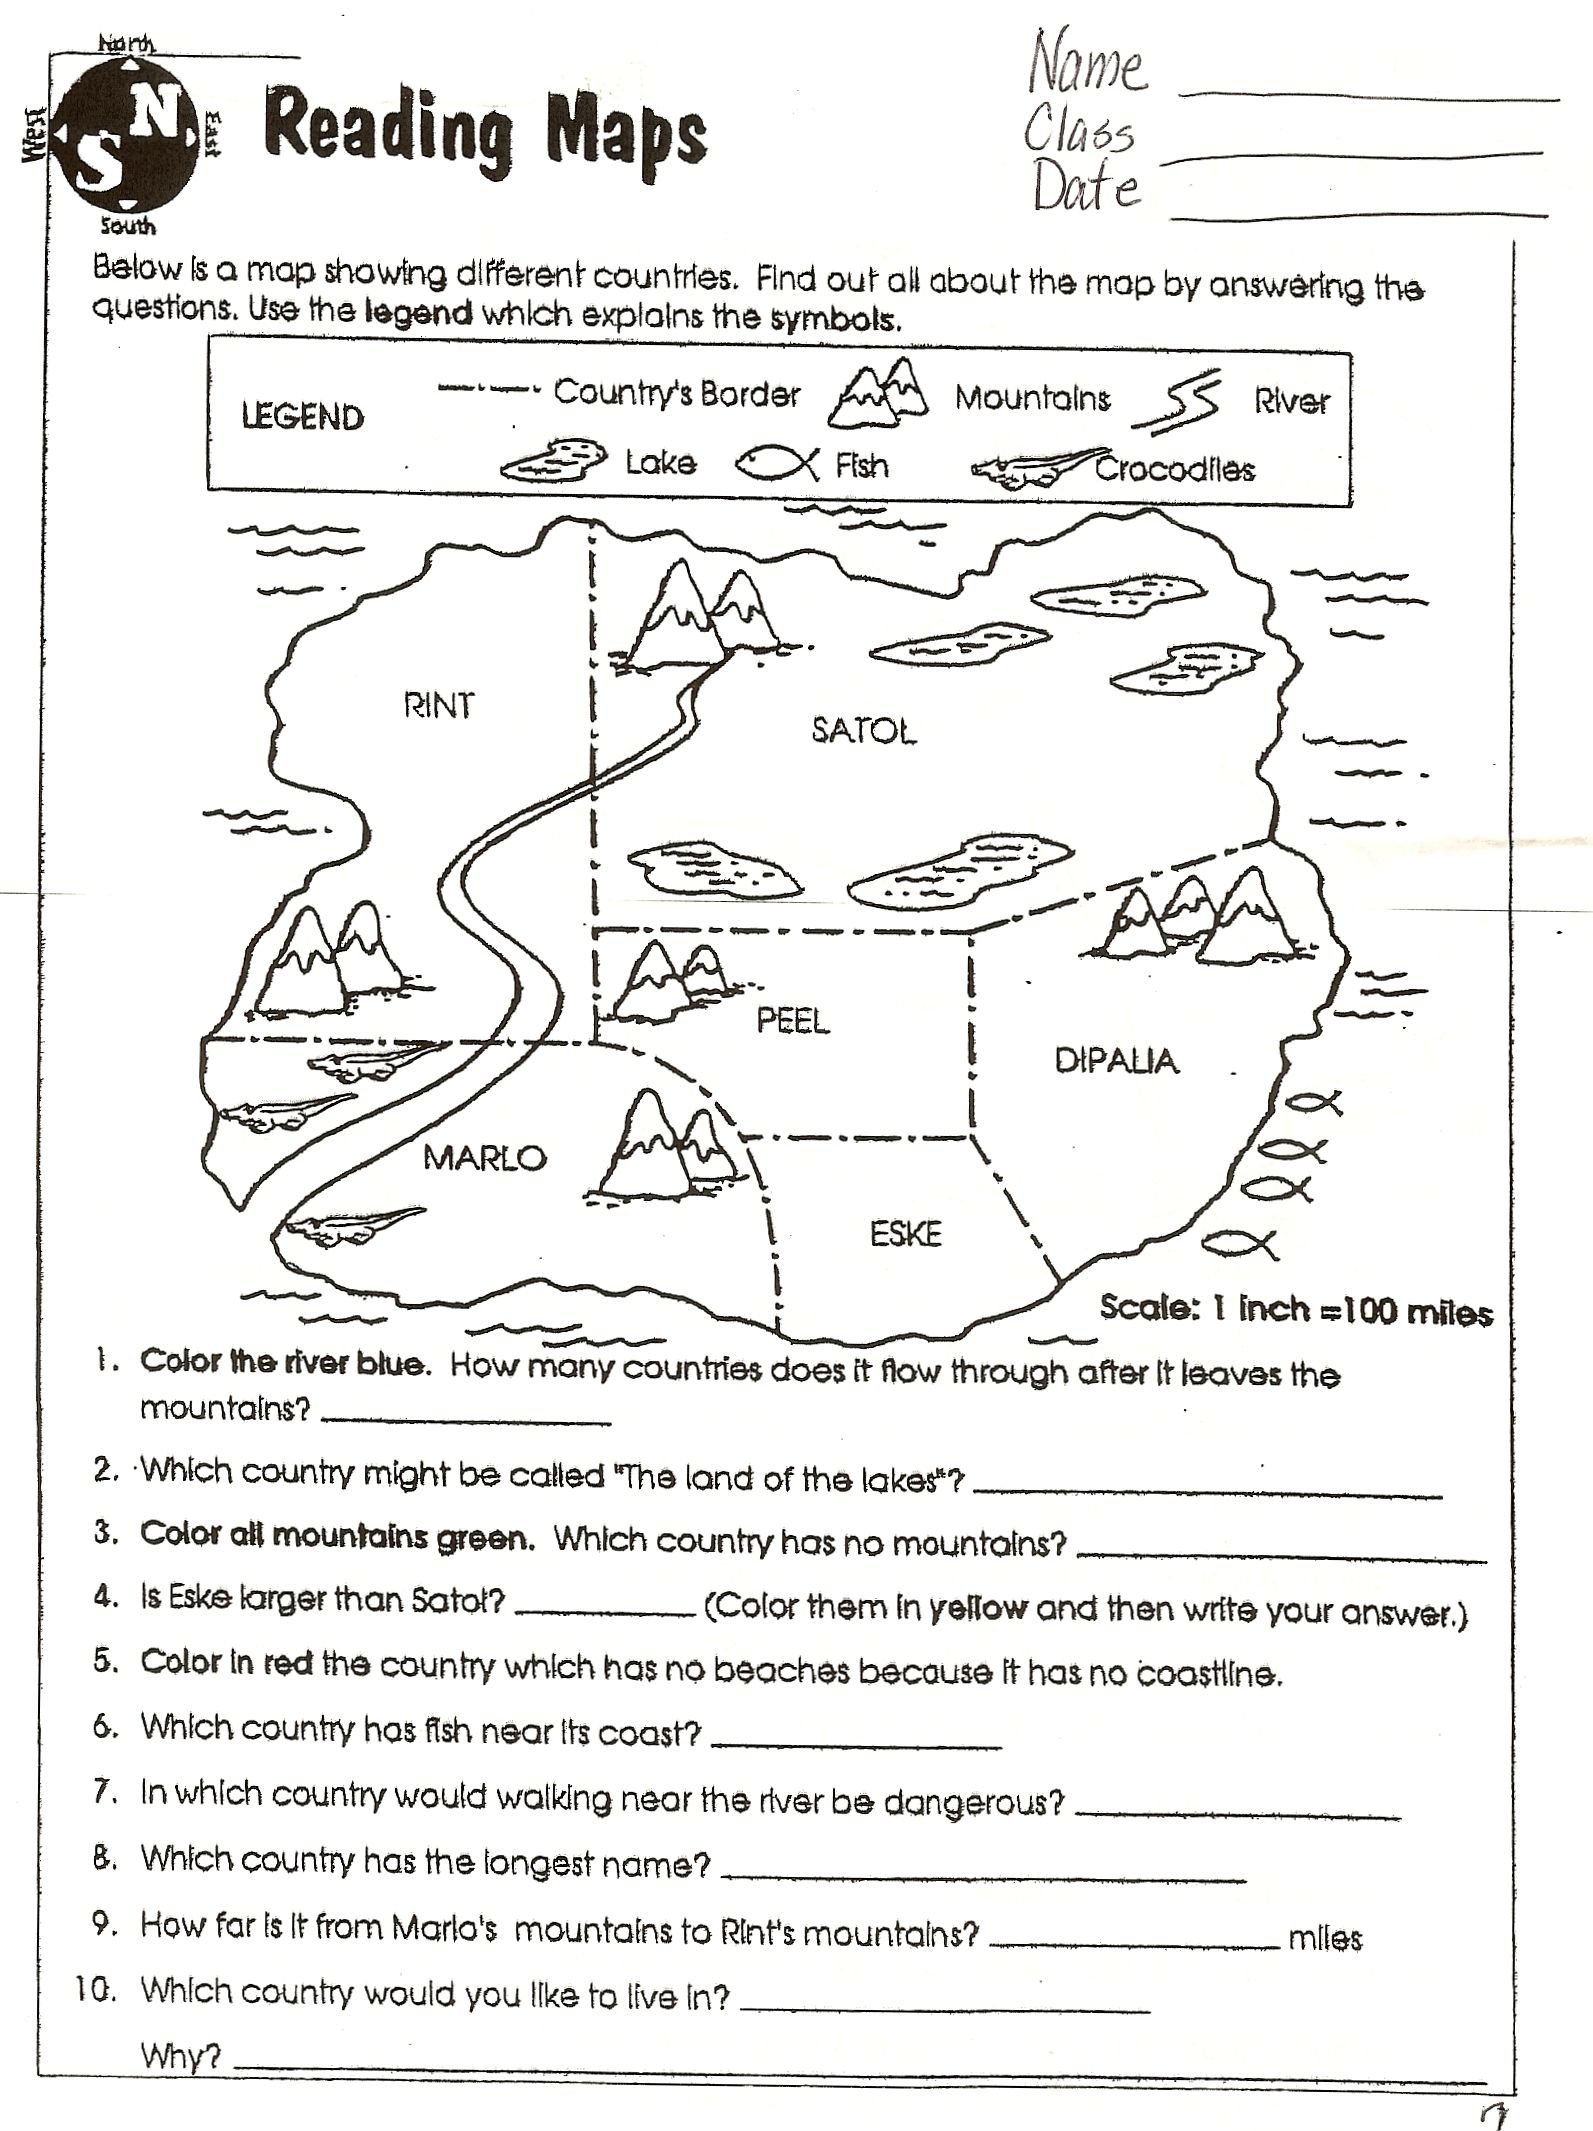 Landforms Worksheet 6th Grade